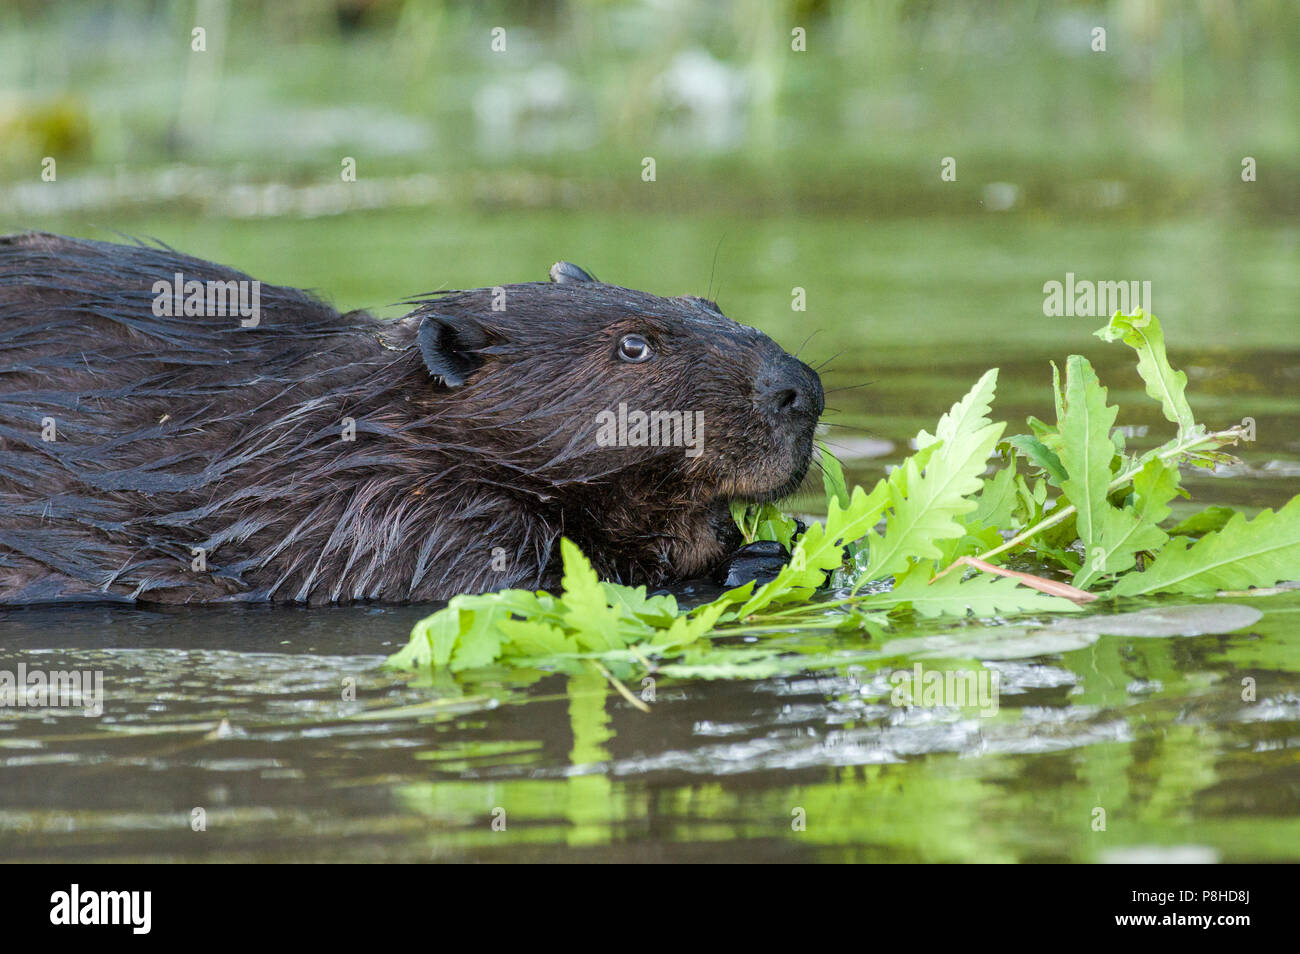 A North American beaver (Castor canadensis) eating plants in the water. Stock Photo